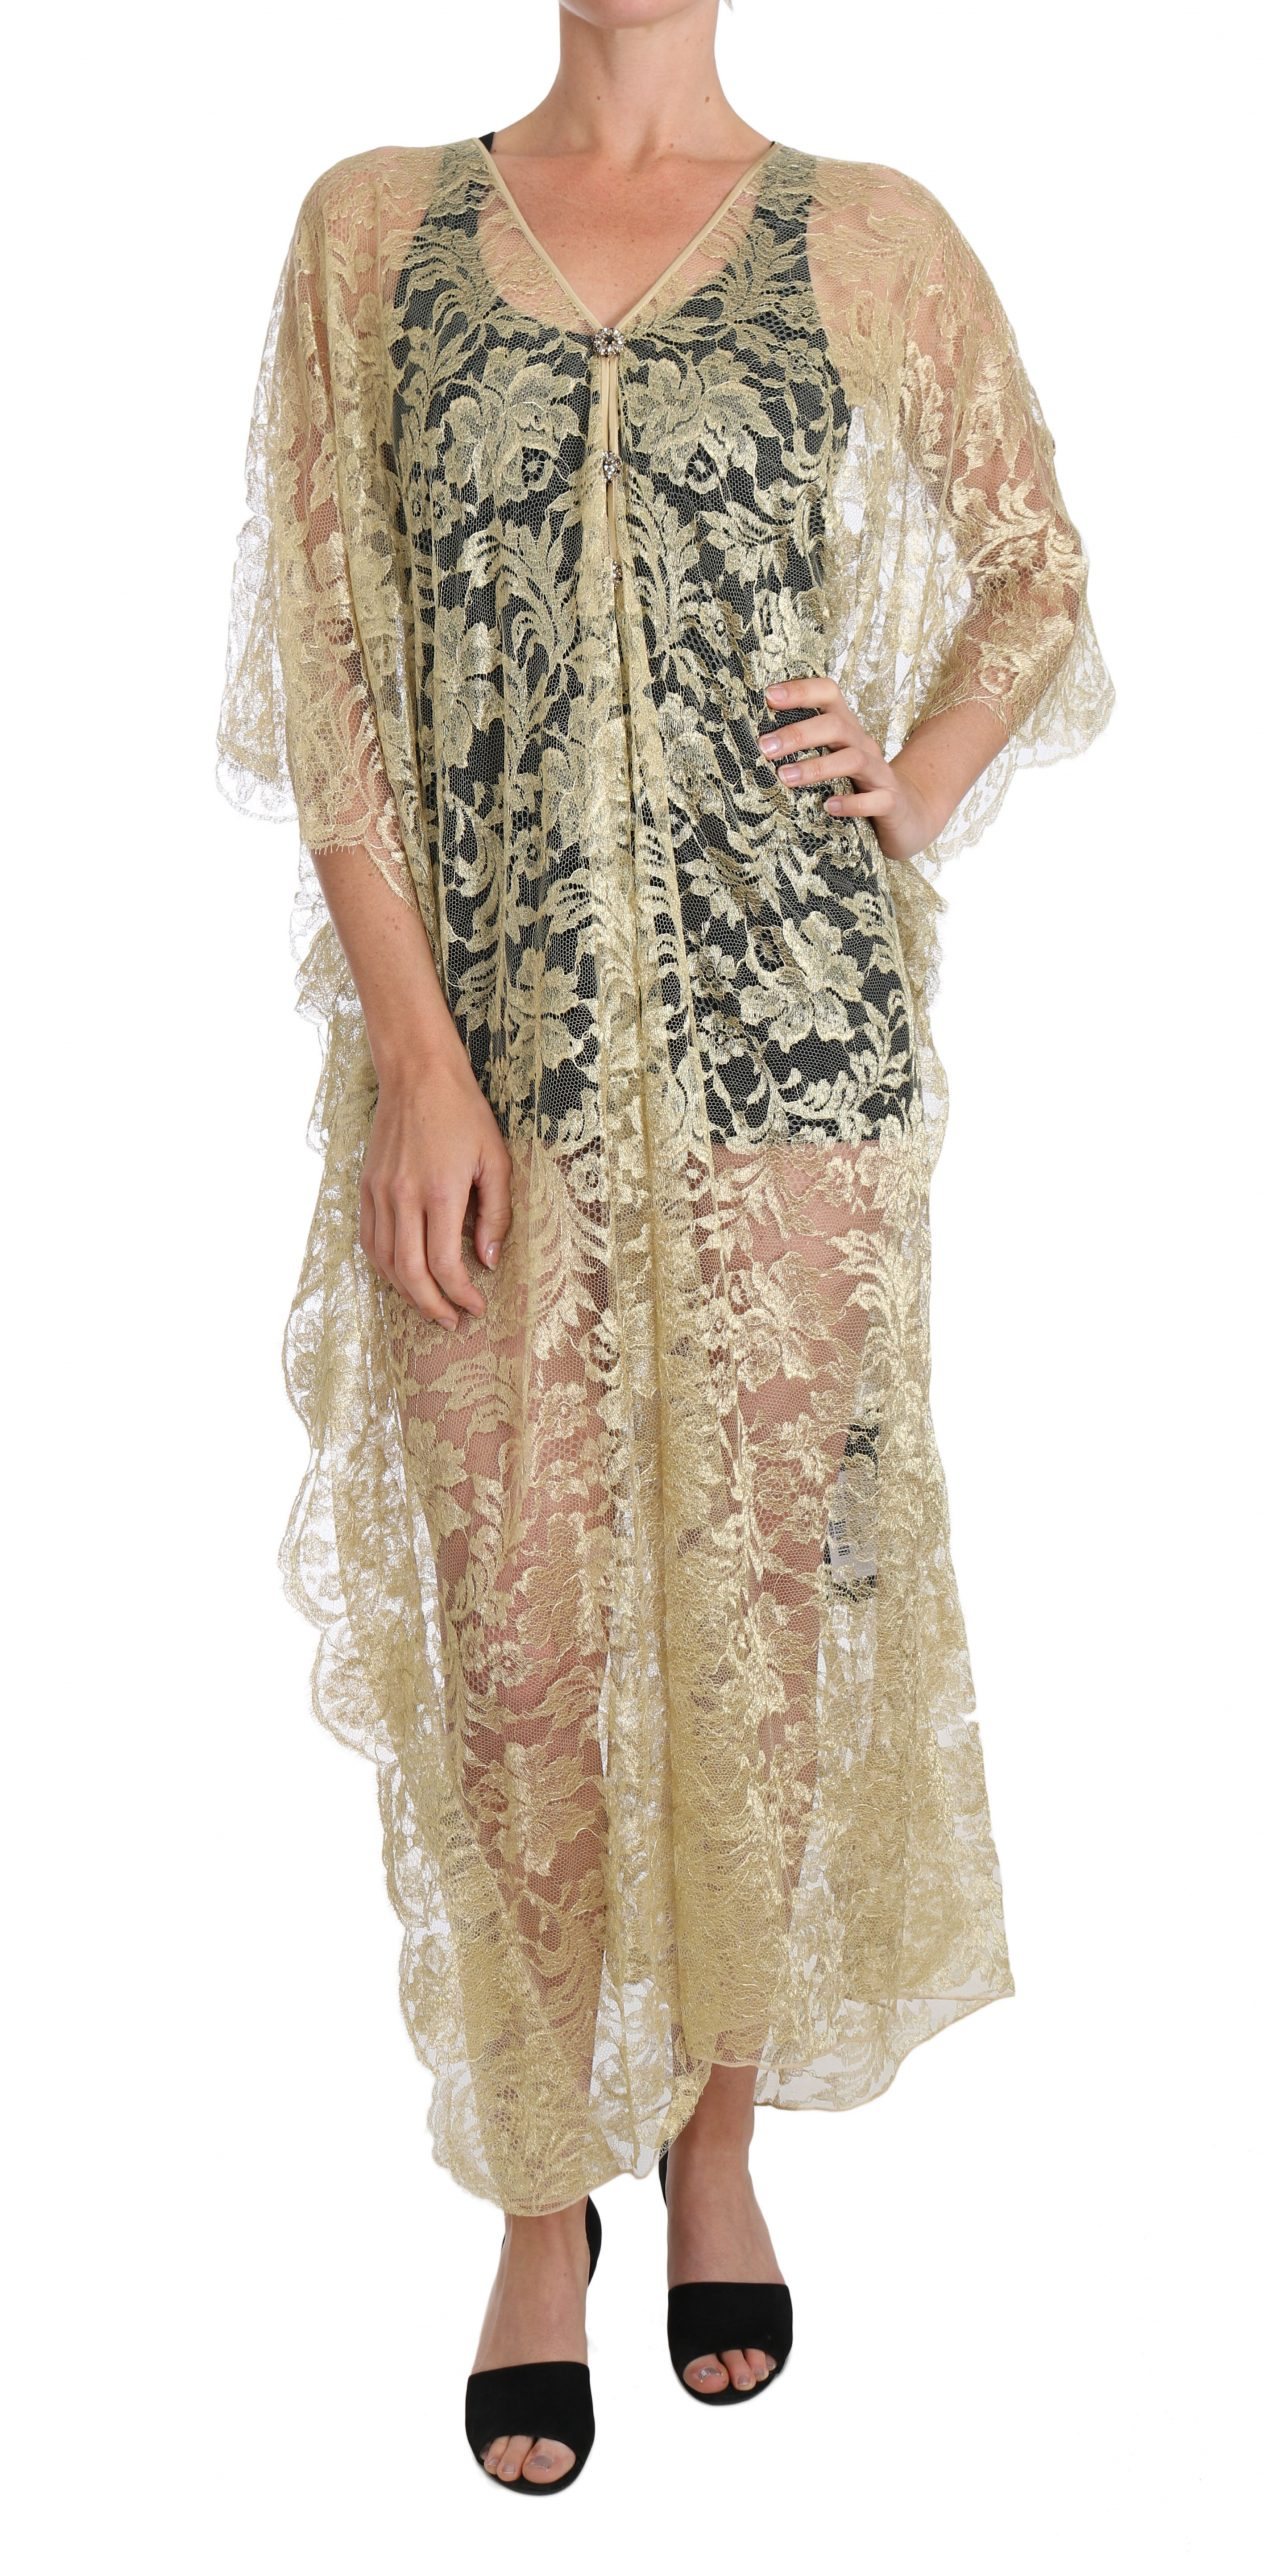 Dolce & Gabbana Women's Floral Lace Crystal Gown Cape Dress Gold DR1524 - IT36 | XS